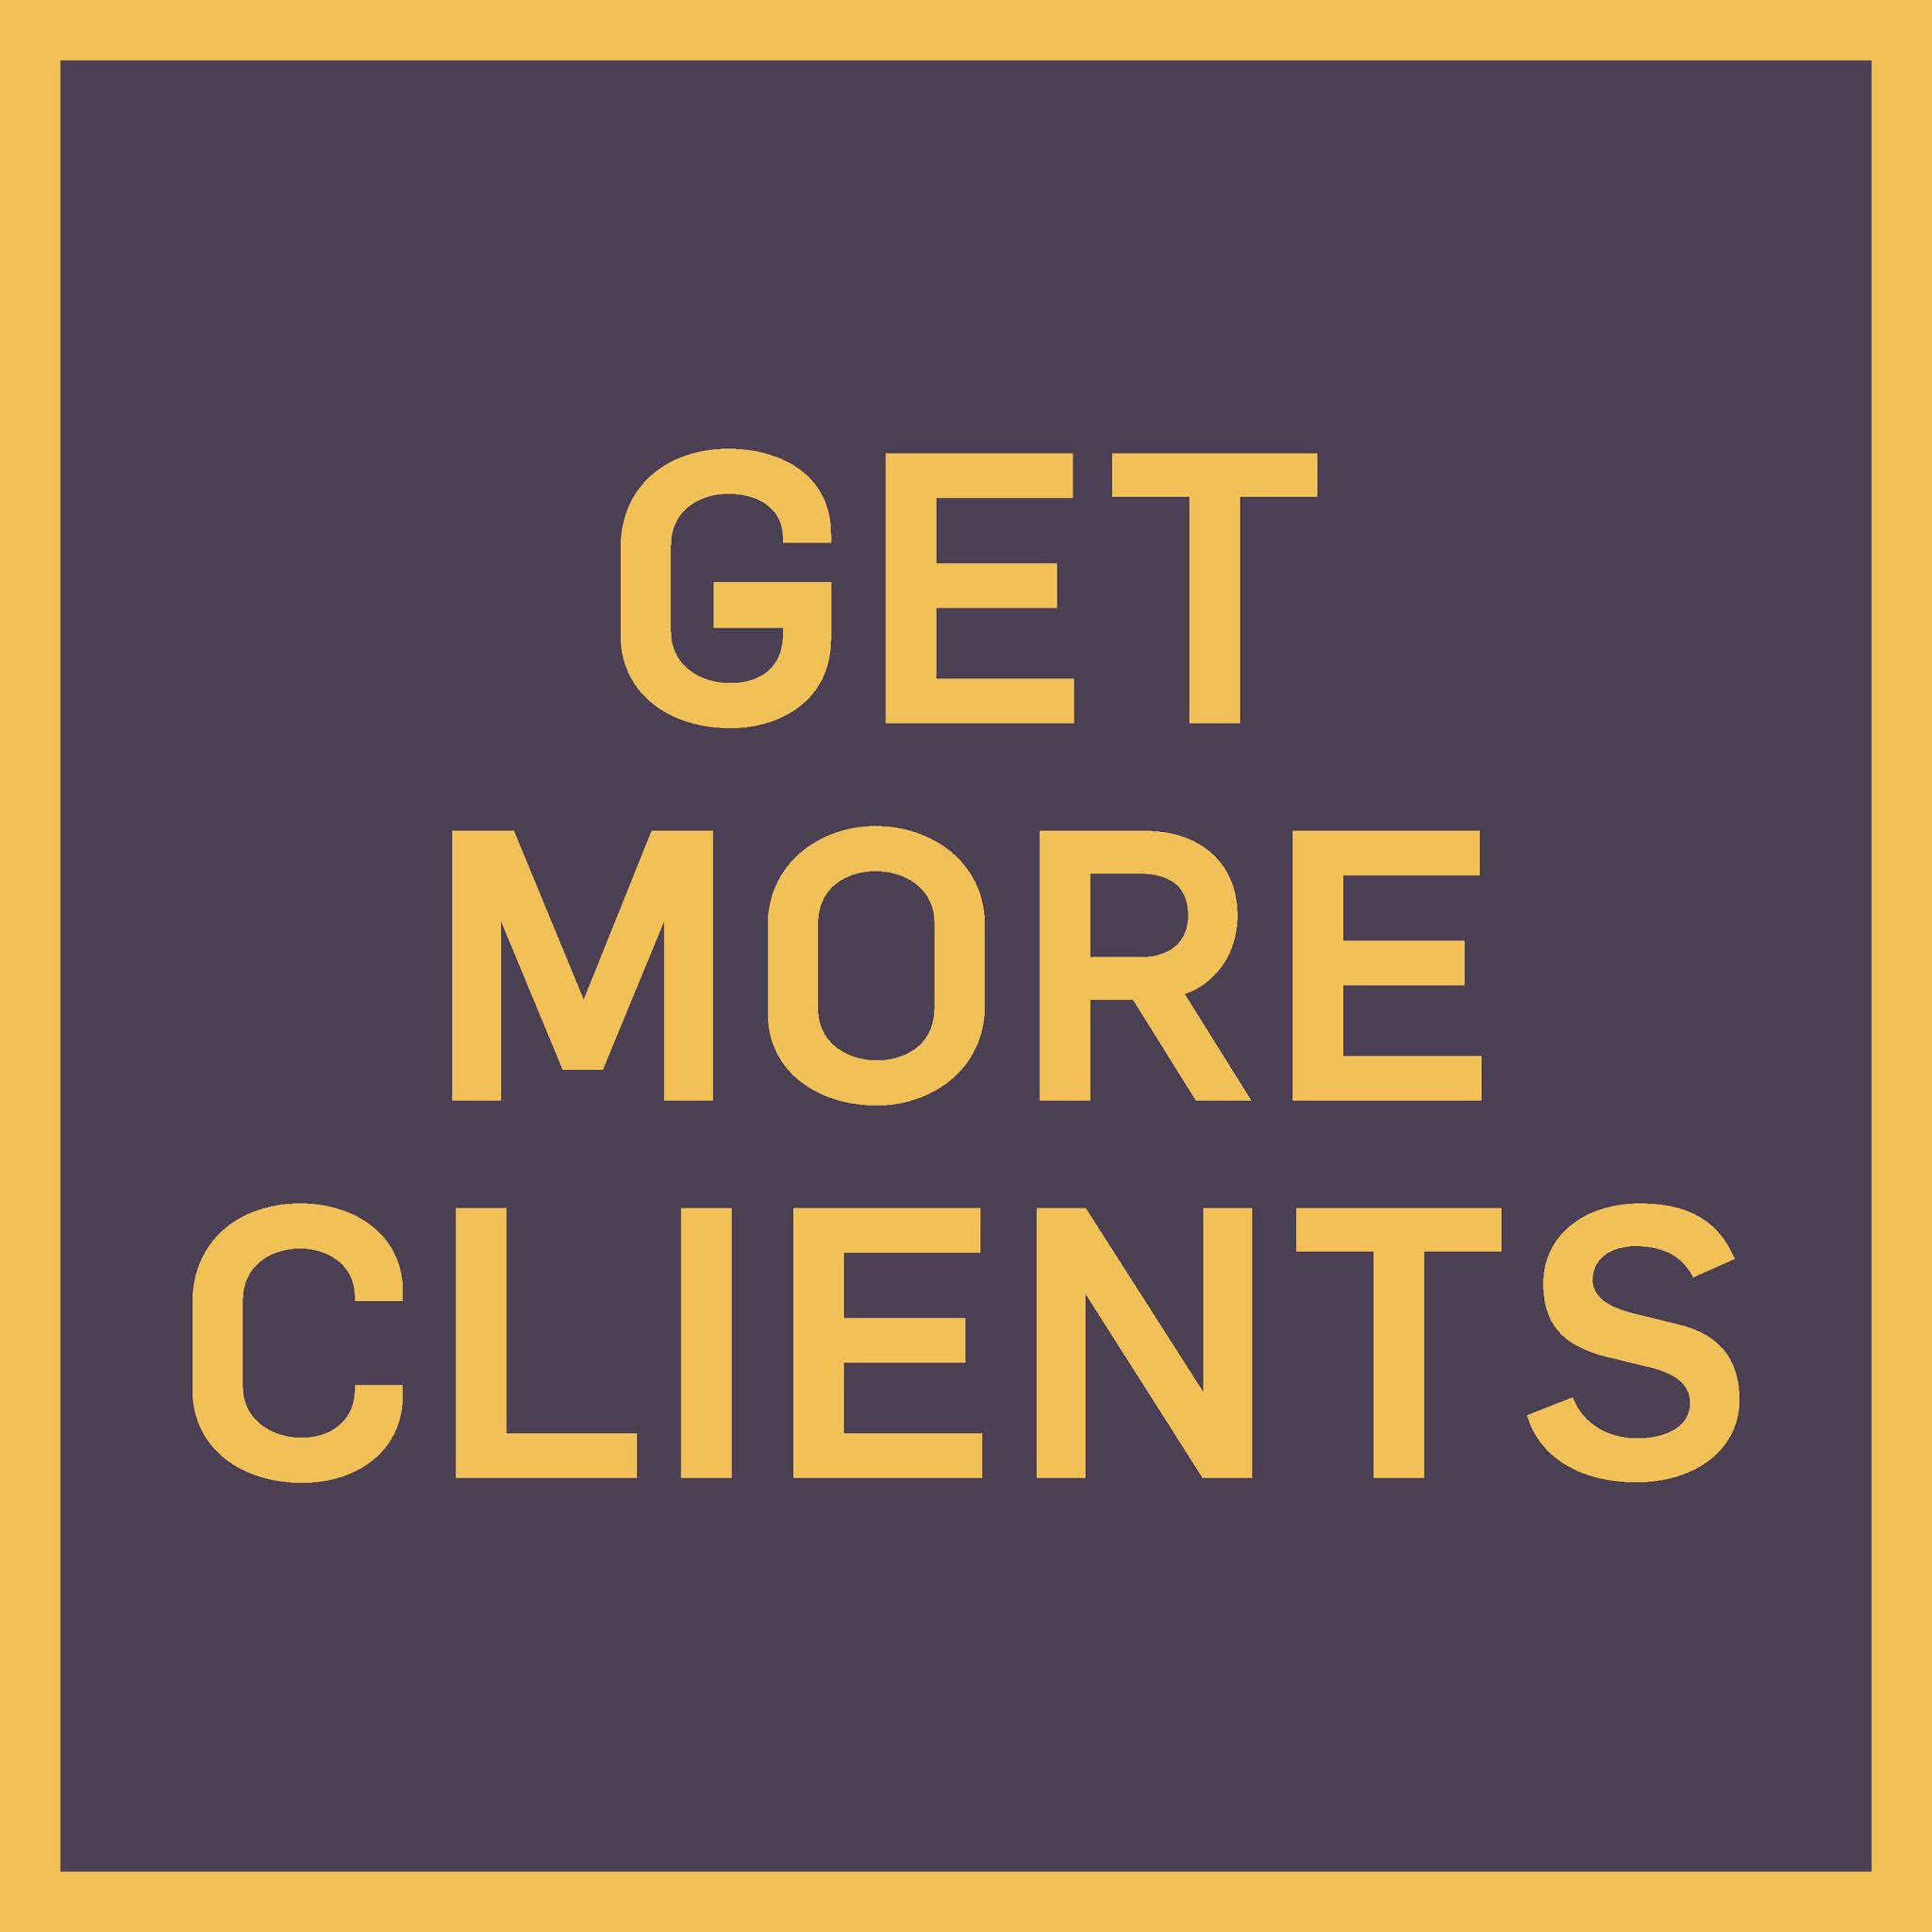 Getting New Clients for Your Business